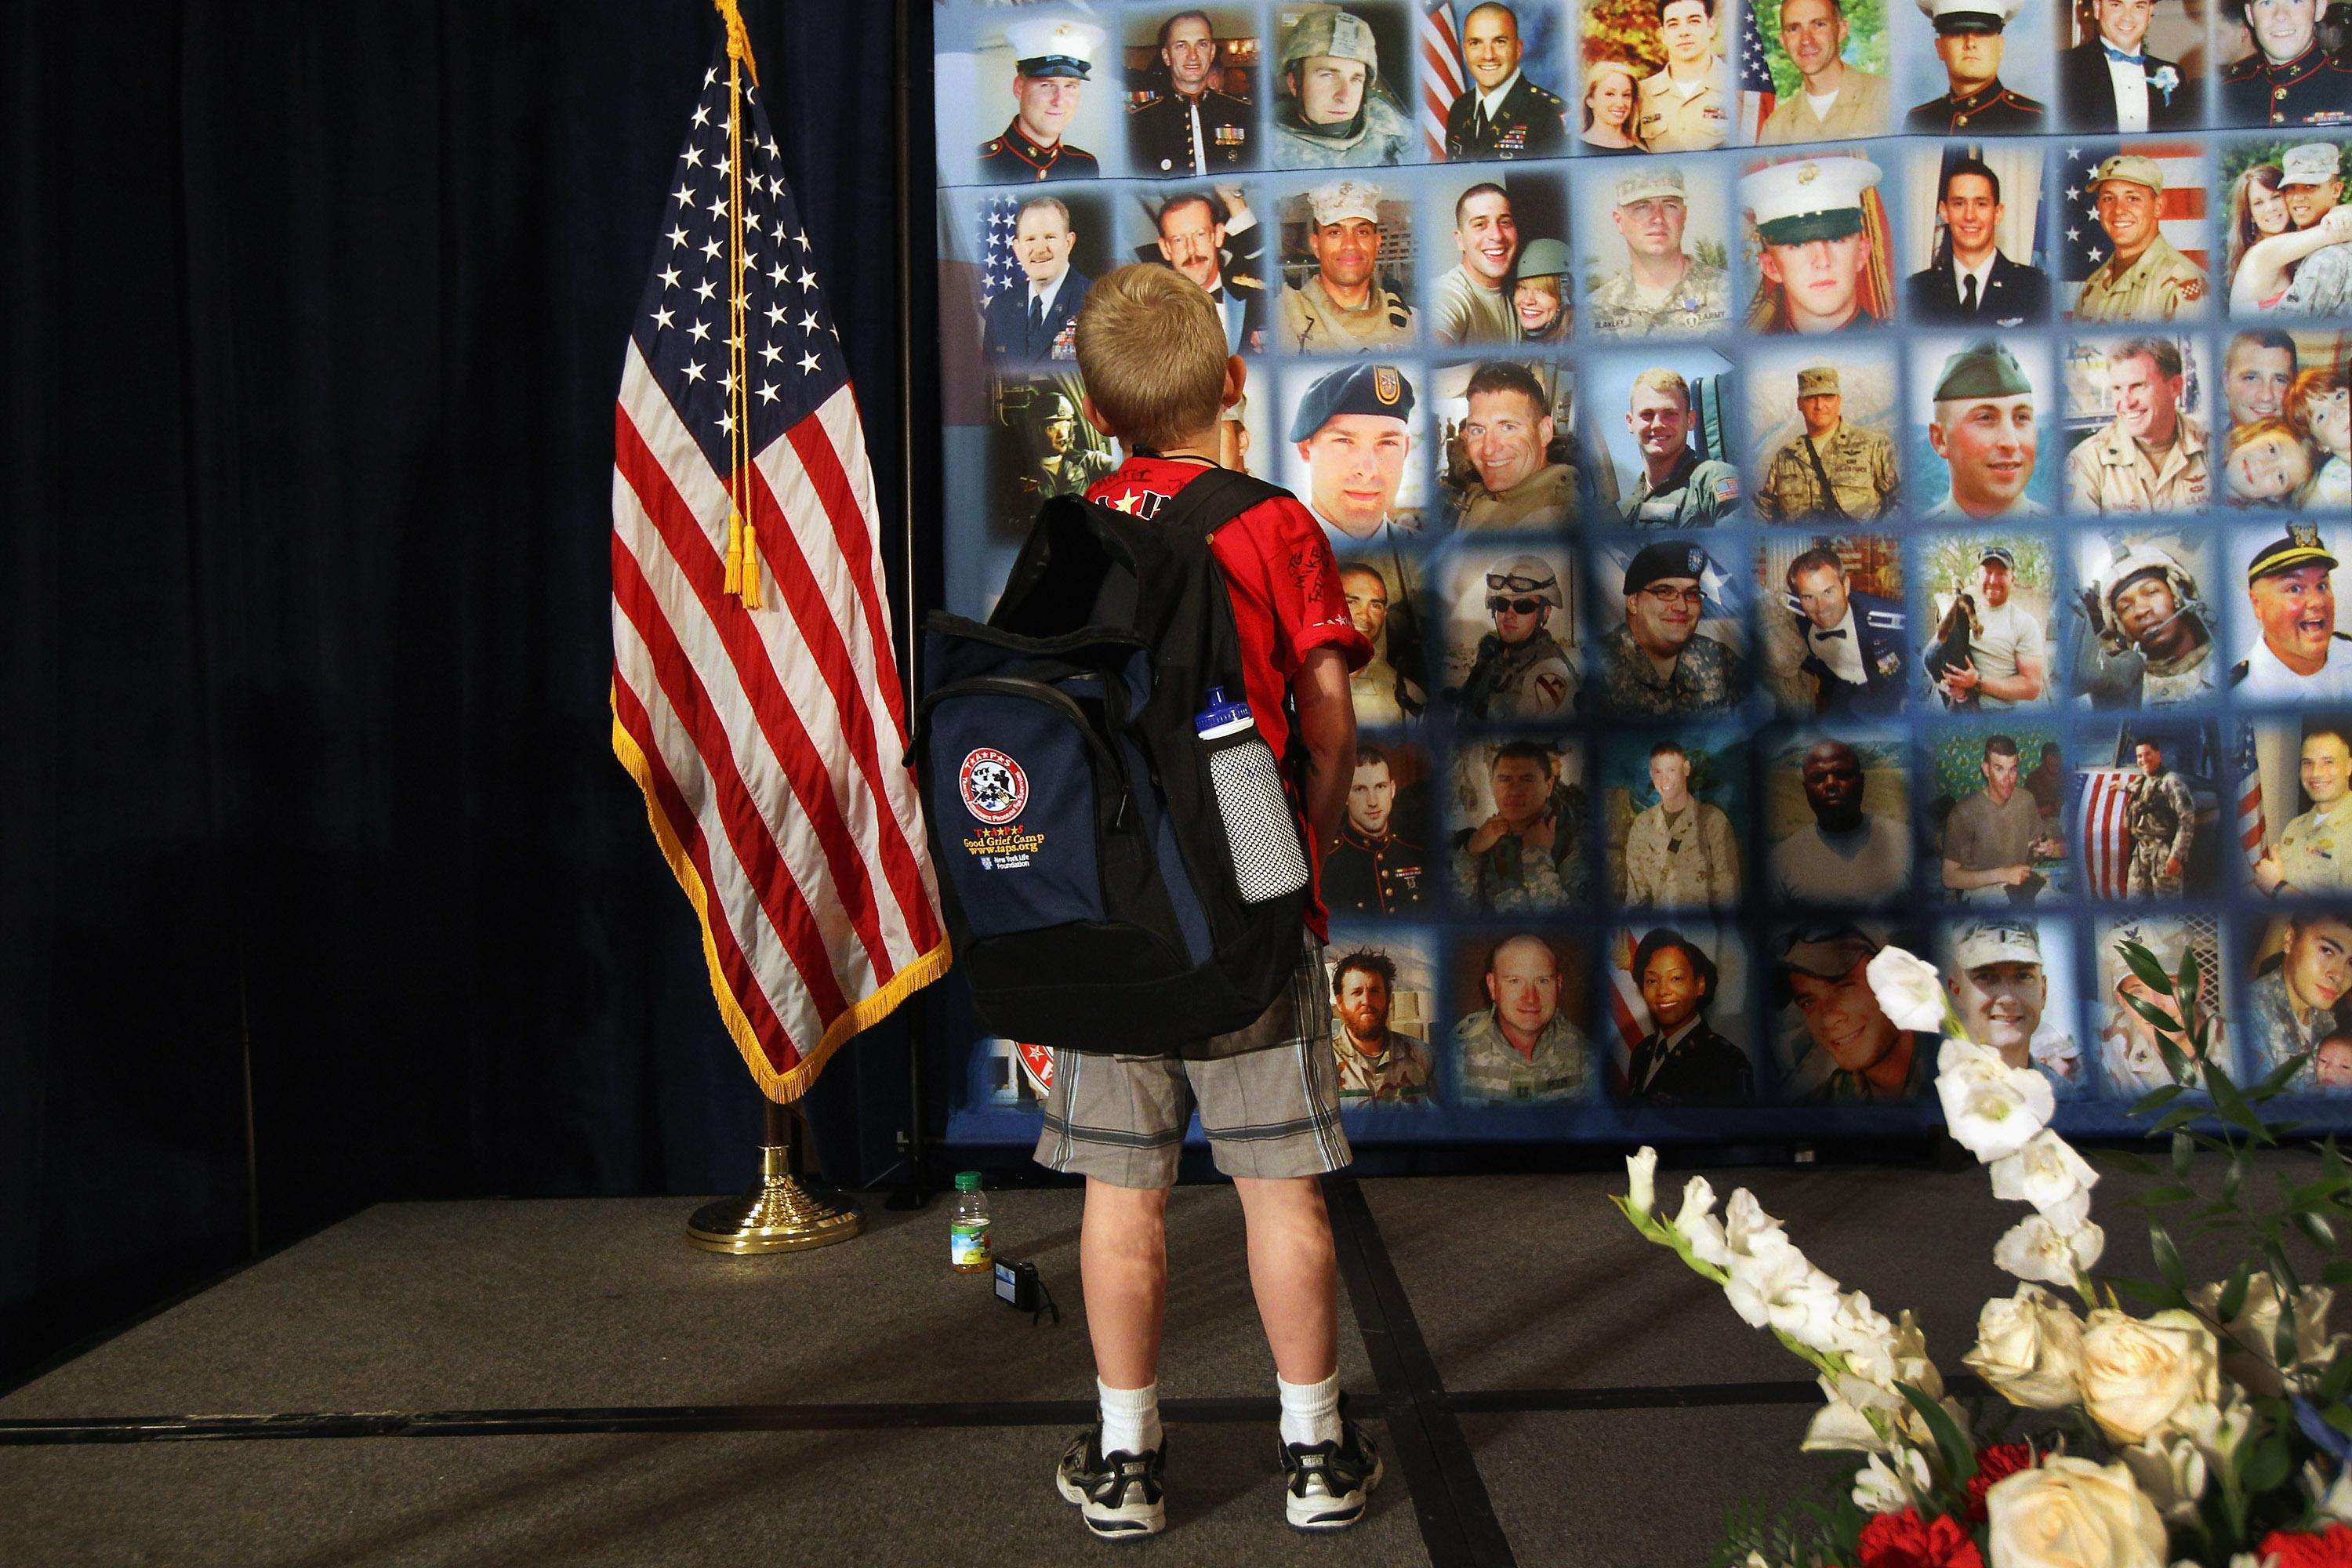 """A child looks over portraits of fallen military personel while participating in the TAPS """"Good Grief Camp"""" on May 27, 2012 in Washington, DC. Five hundred military children and teens, many of whom had a parent that was killed in the Afghan and Iraq wars, attended the annual four-day """"Good Grief Camp"""" in Arlington, VA and Washington, DC, which is run by TAPS (Tragedy Assistance Program for Survivors). The camp helped them learn coping skills and build relationships so they know they are not alone in the grief of their loved one. They met others of their own age group, learned together and shared their feelings, both through group activities and one-on-one mentors, who are all active duty or former military servicemembers. Some 1,200 adults, most of whom are grieving parents and spouses, also attend the National Military Survival Seminar held concurrently with the children's camp. The TAPS slogan is """"Remember the Love. Celebrate the Life. Share the Journey."""" (Photo by John Moore/Getty Images)"""